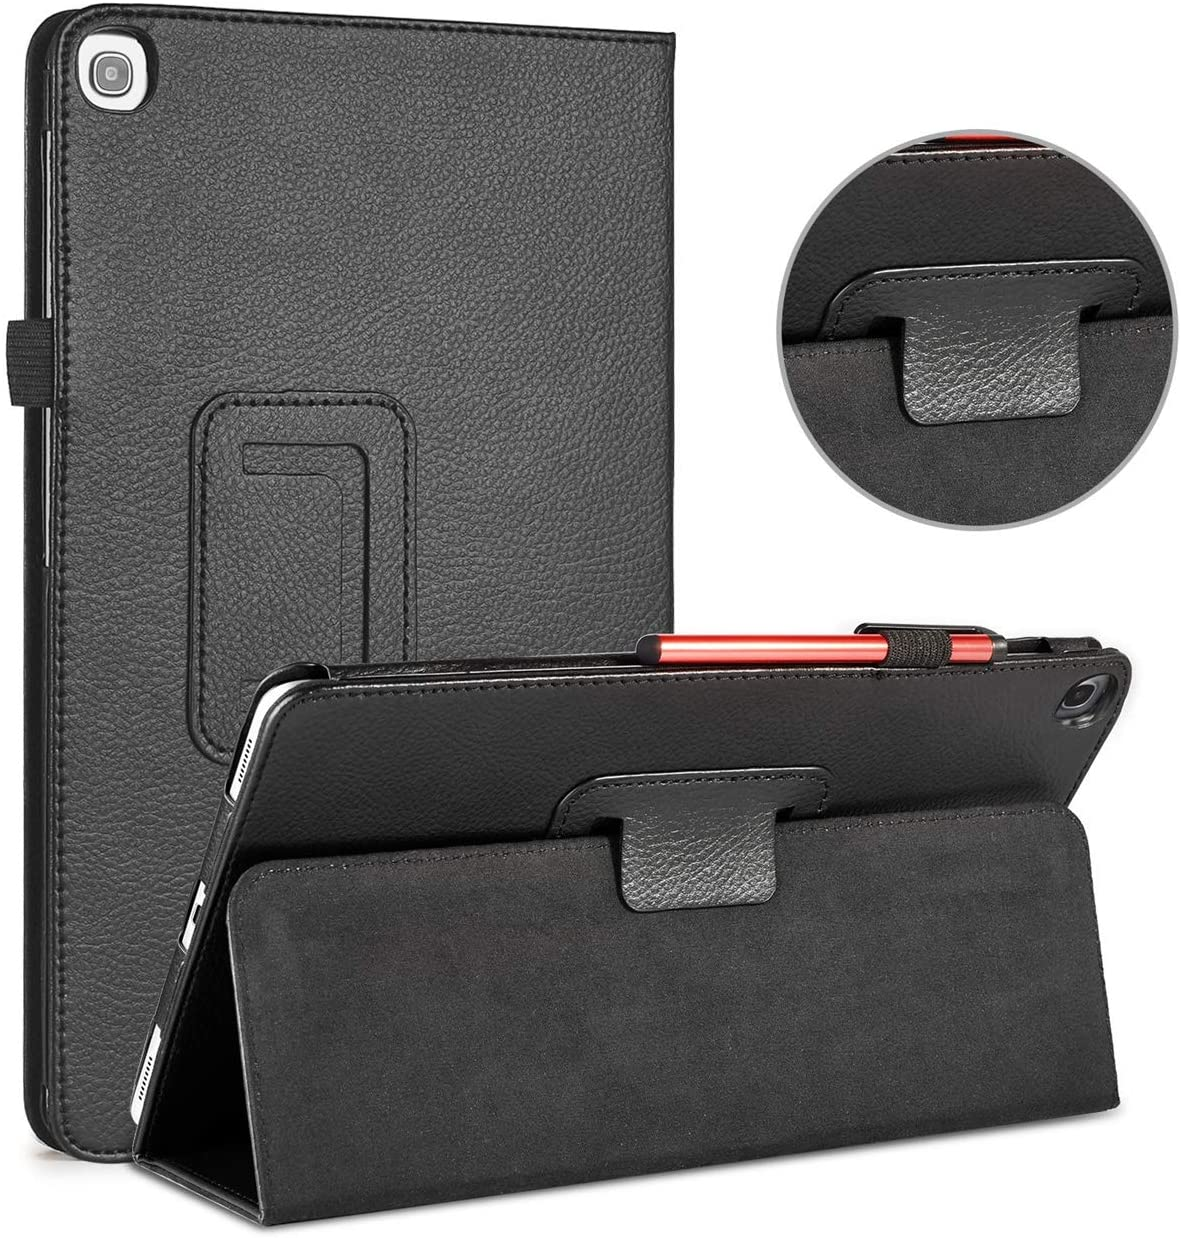 For Samsung Galaxy Tab A 10.1 Case 2019 PU Leather Magnetic Flip Cover For Samsung Galaxy Tab A 10.1'' SM-T510 / SM-T515 Tablet